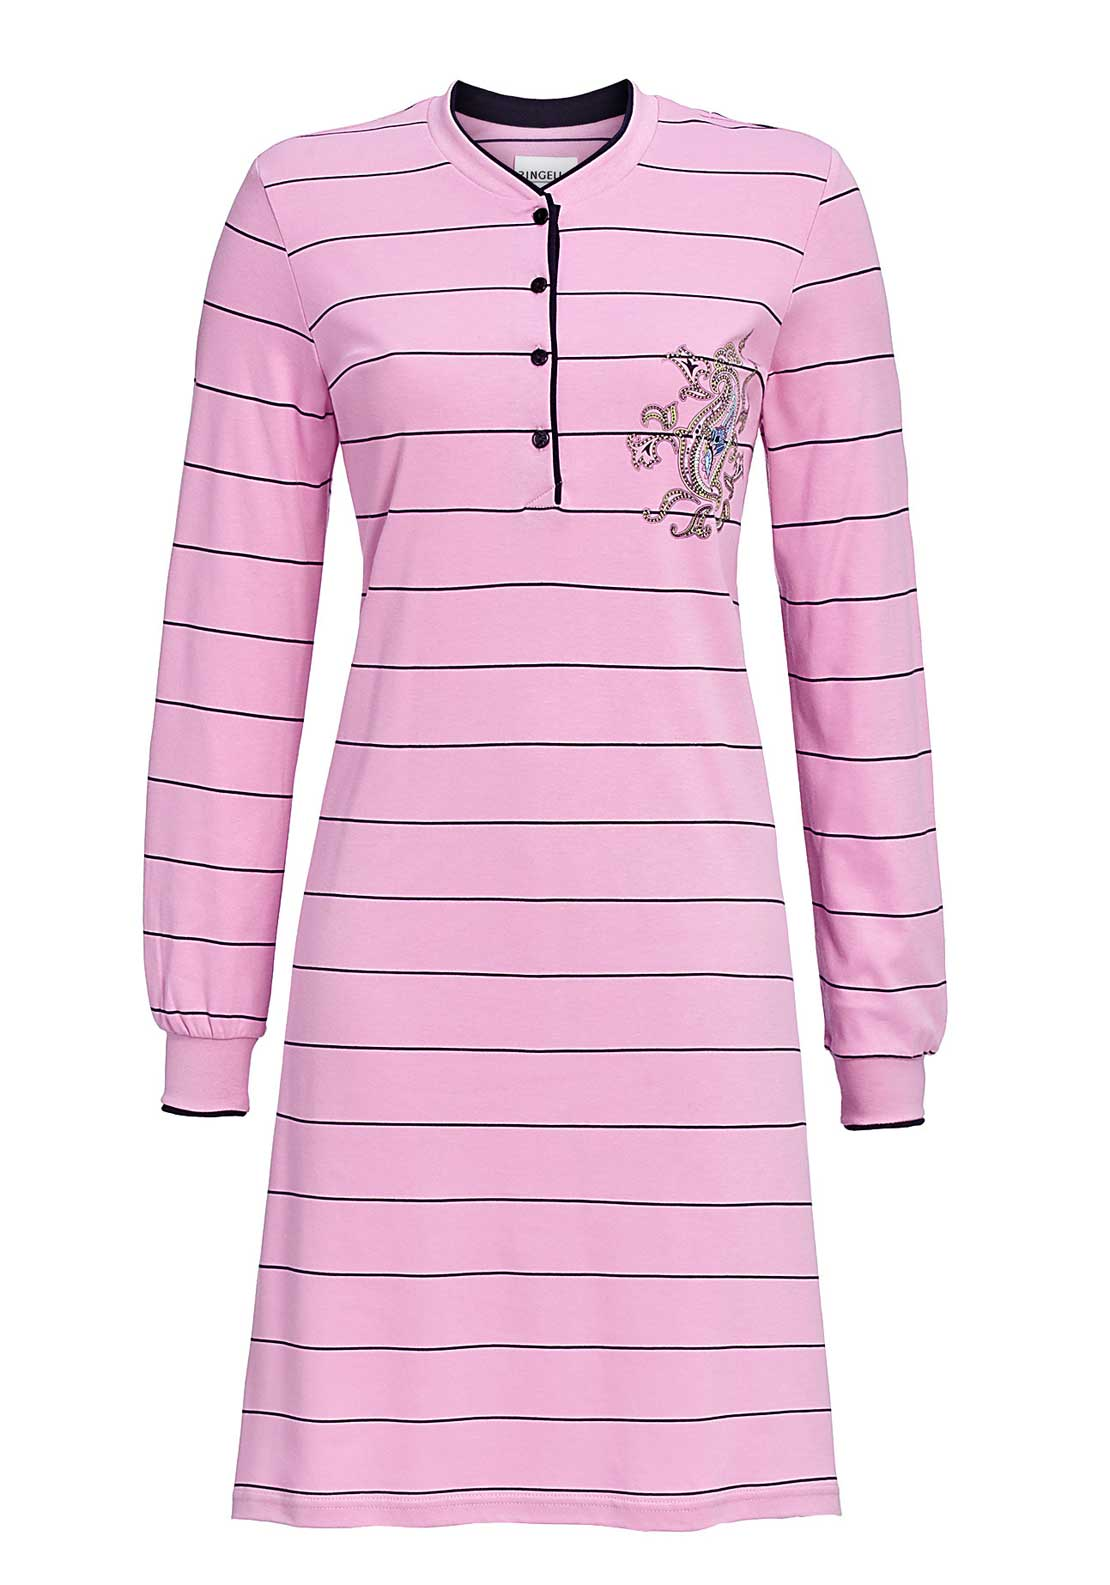 Ringella Striped Paisley Graphic Print Long Sleeve Nightdress, Pink